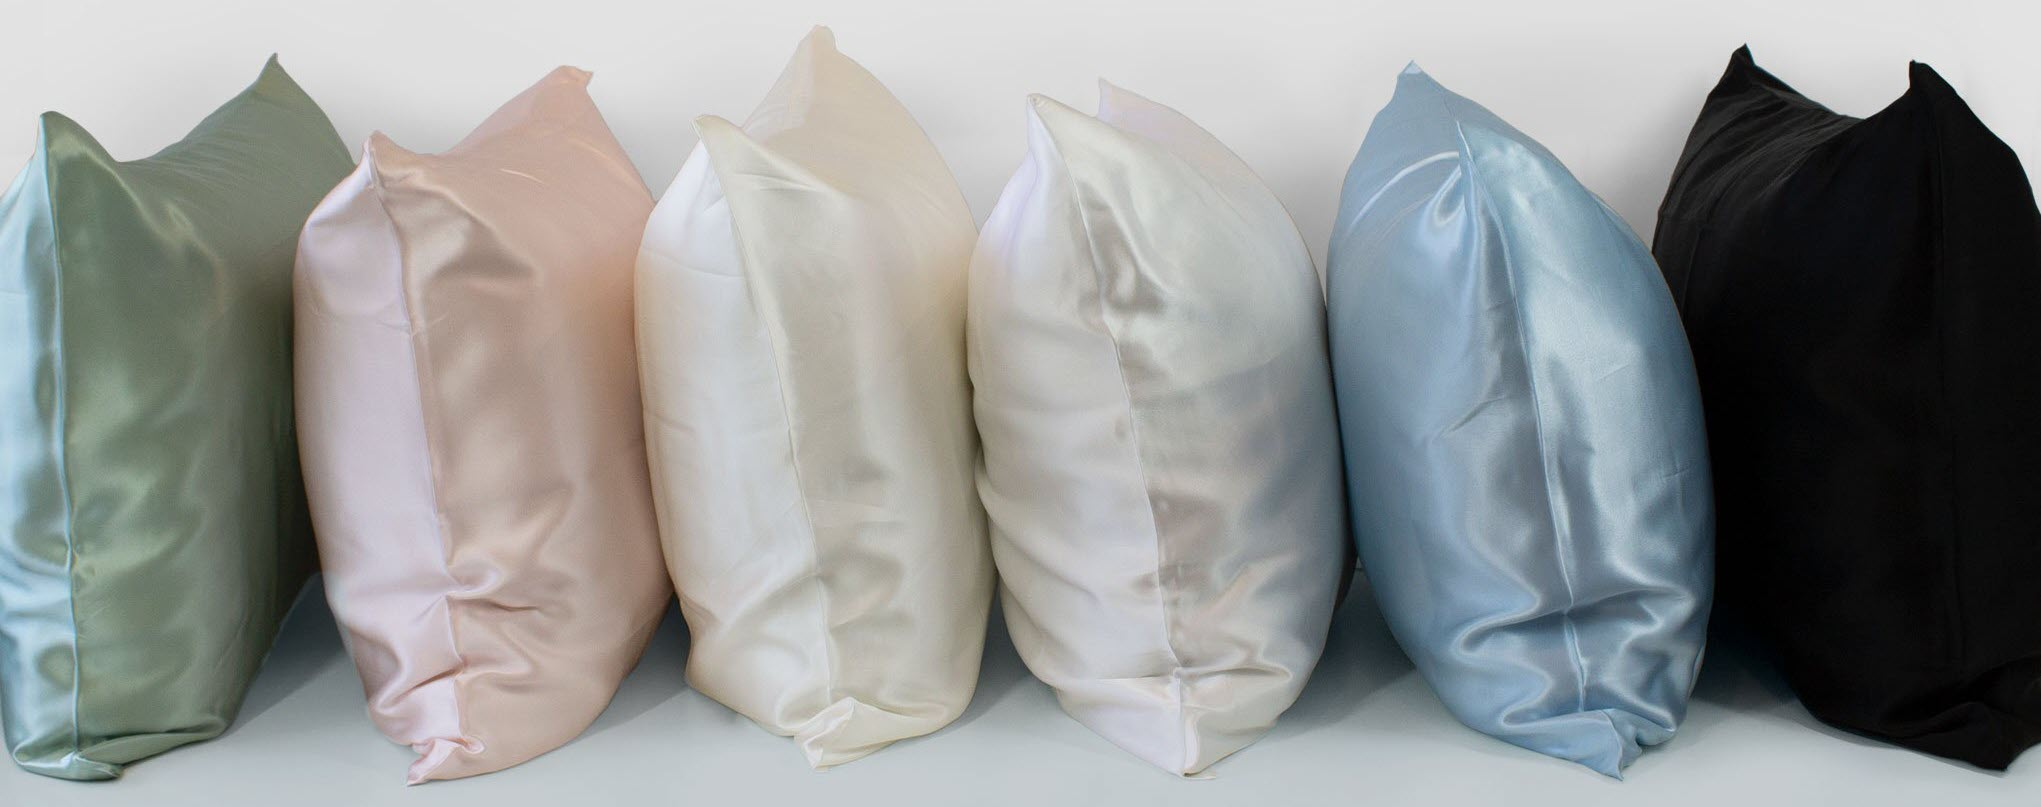 Silk pillowcases of different momme weight